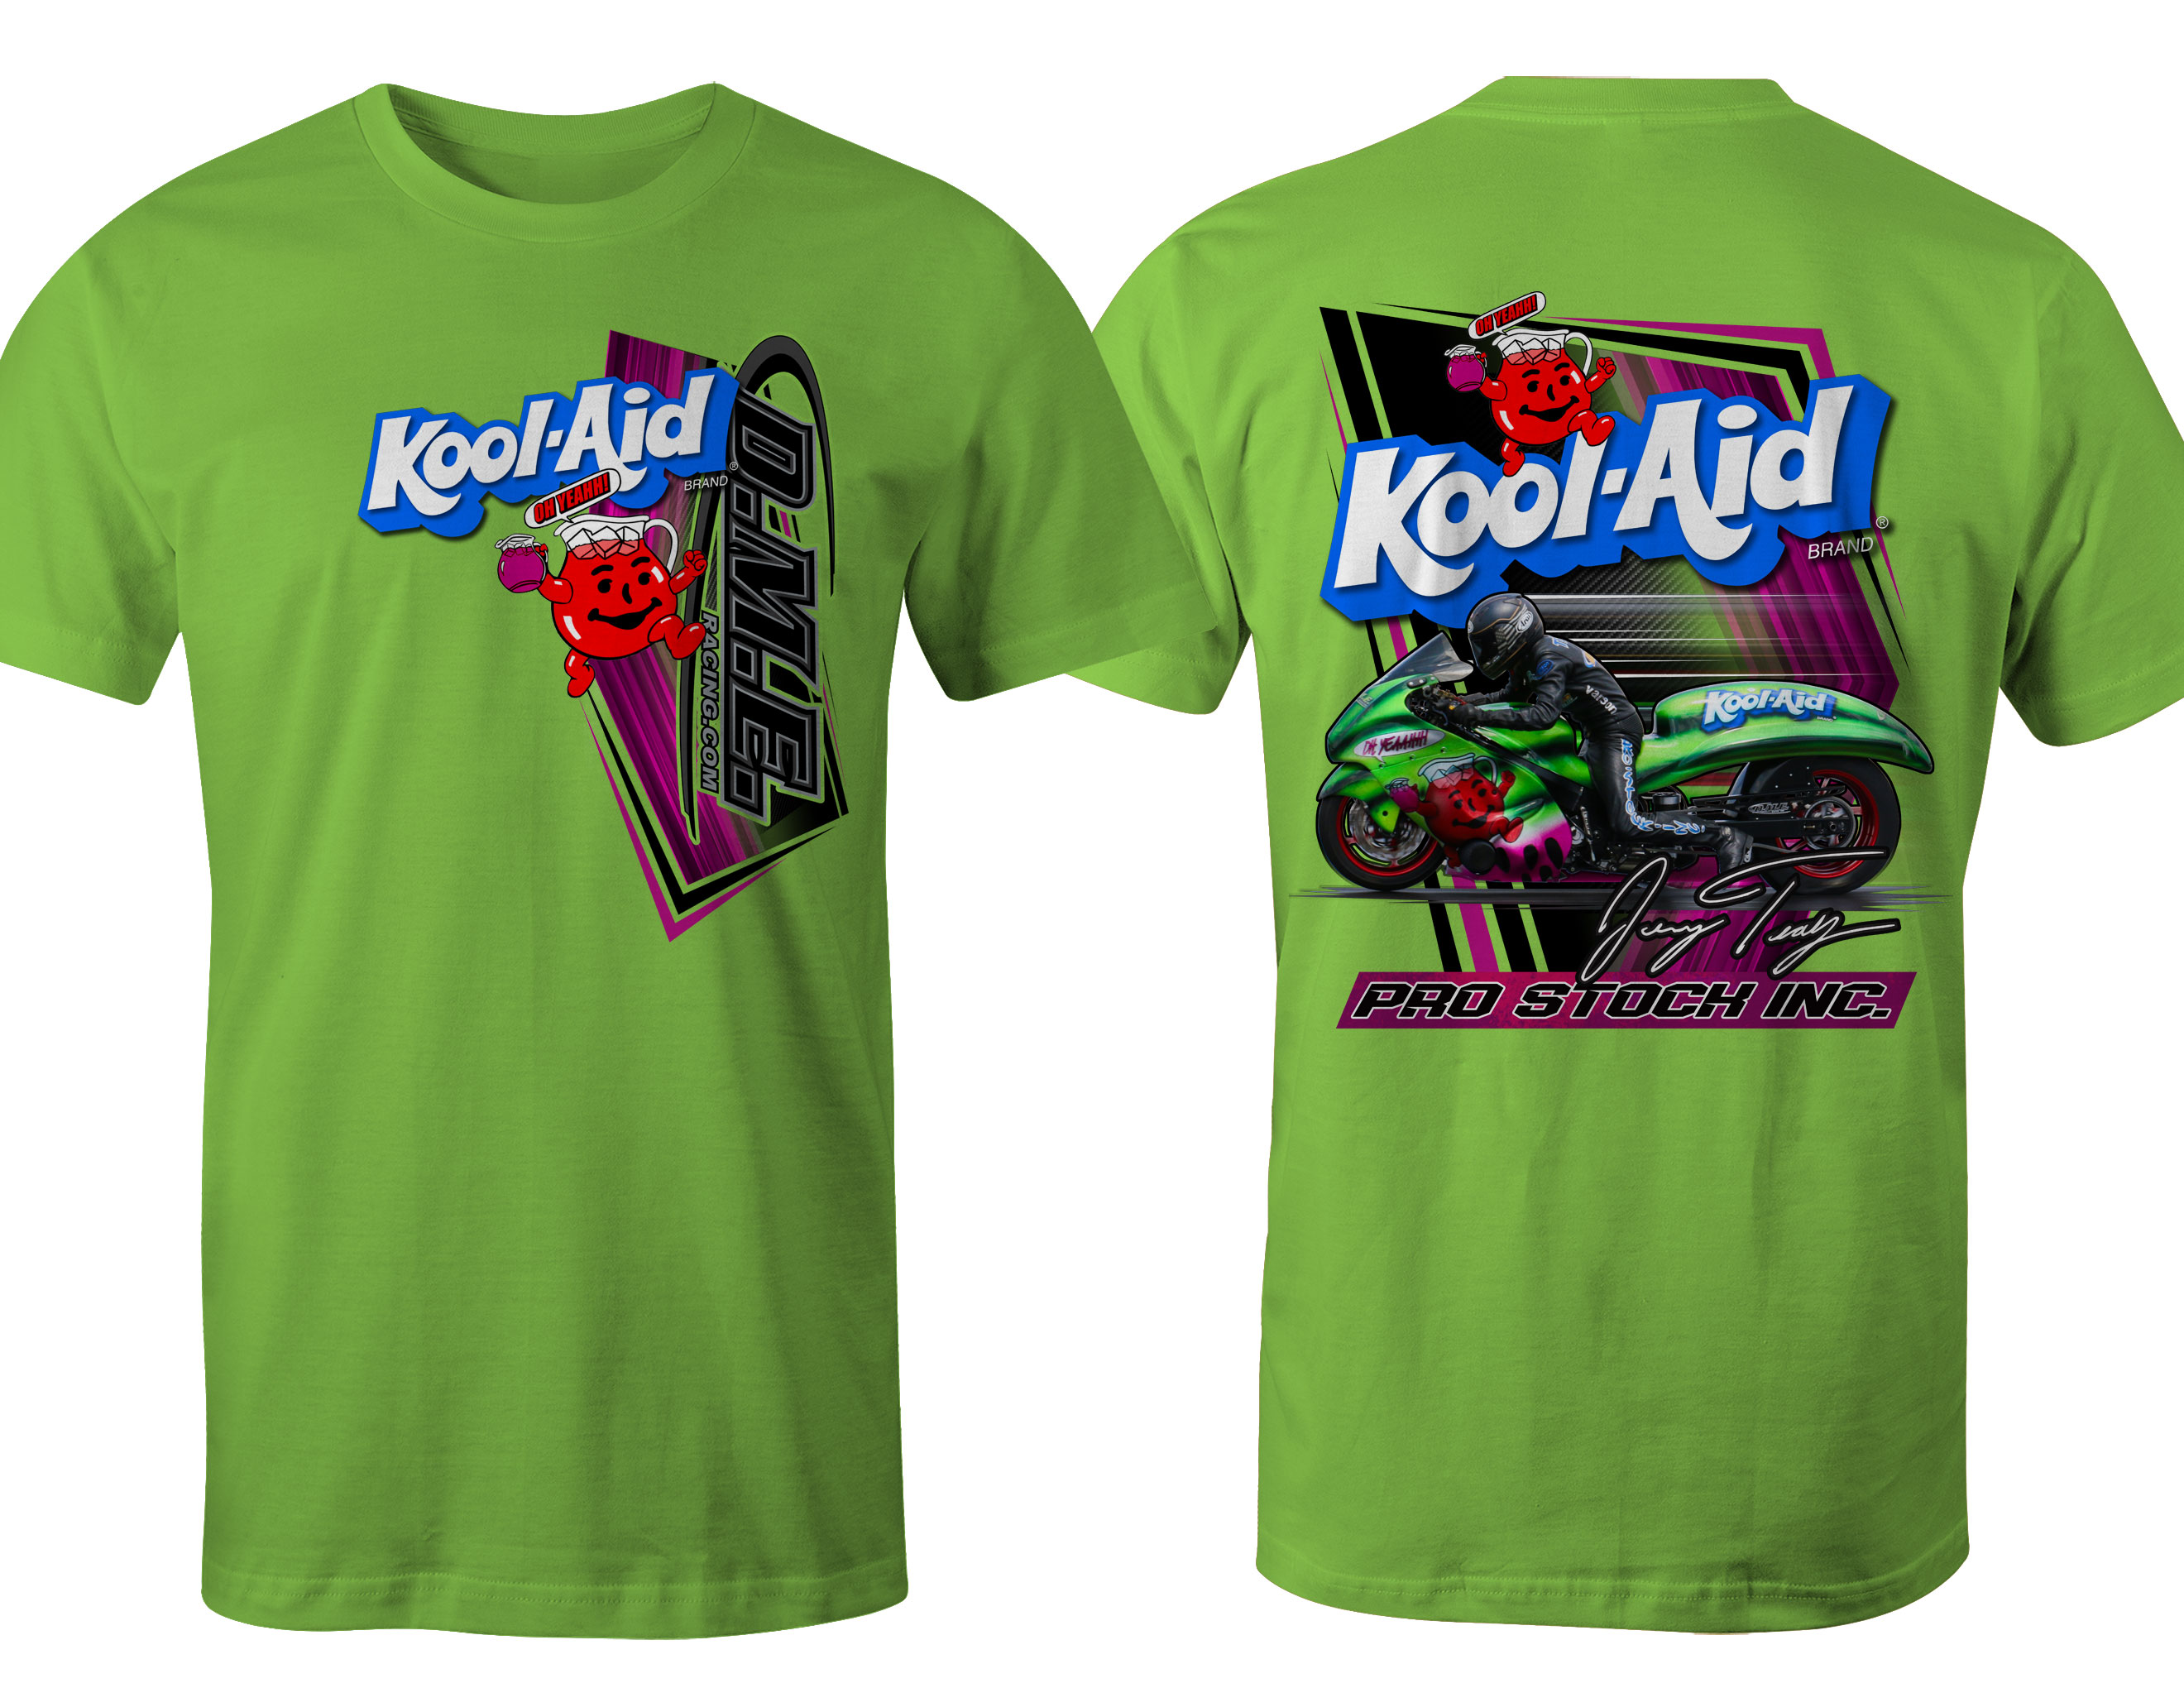 Kool-Aid Grudge Bike T-Shirt